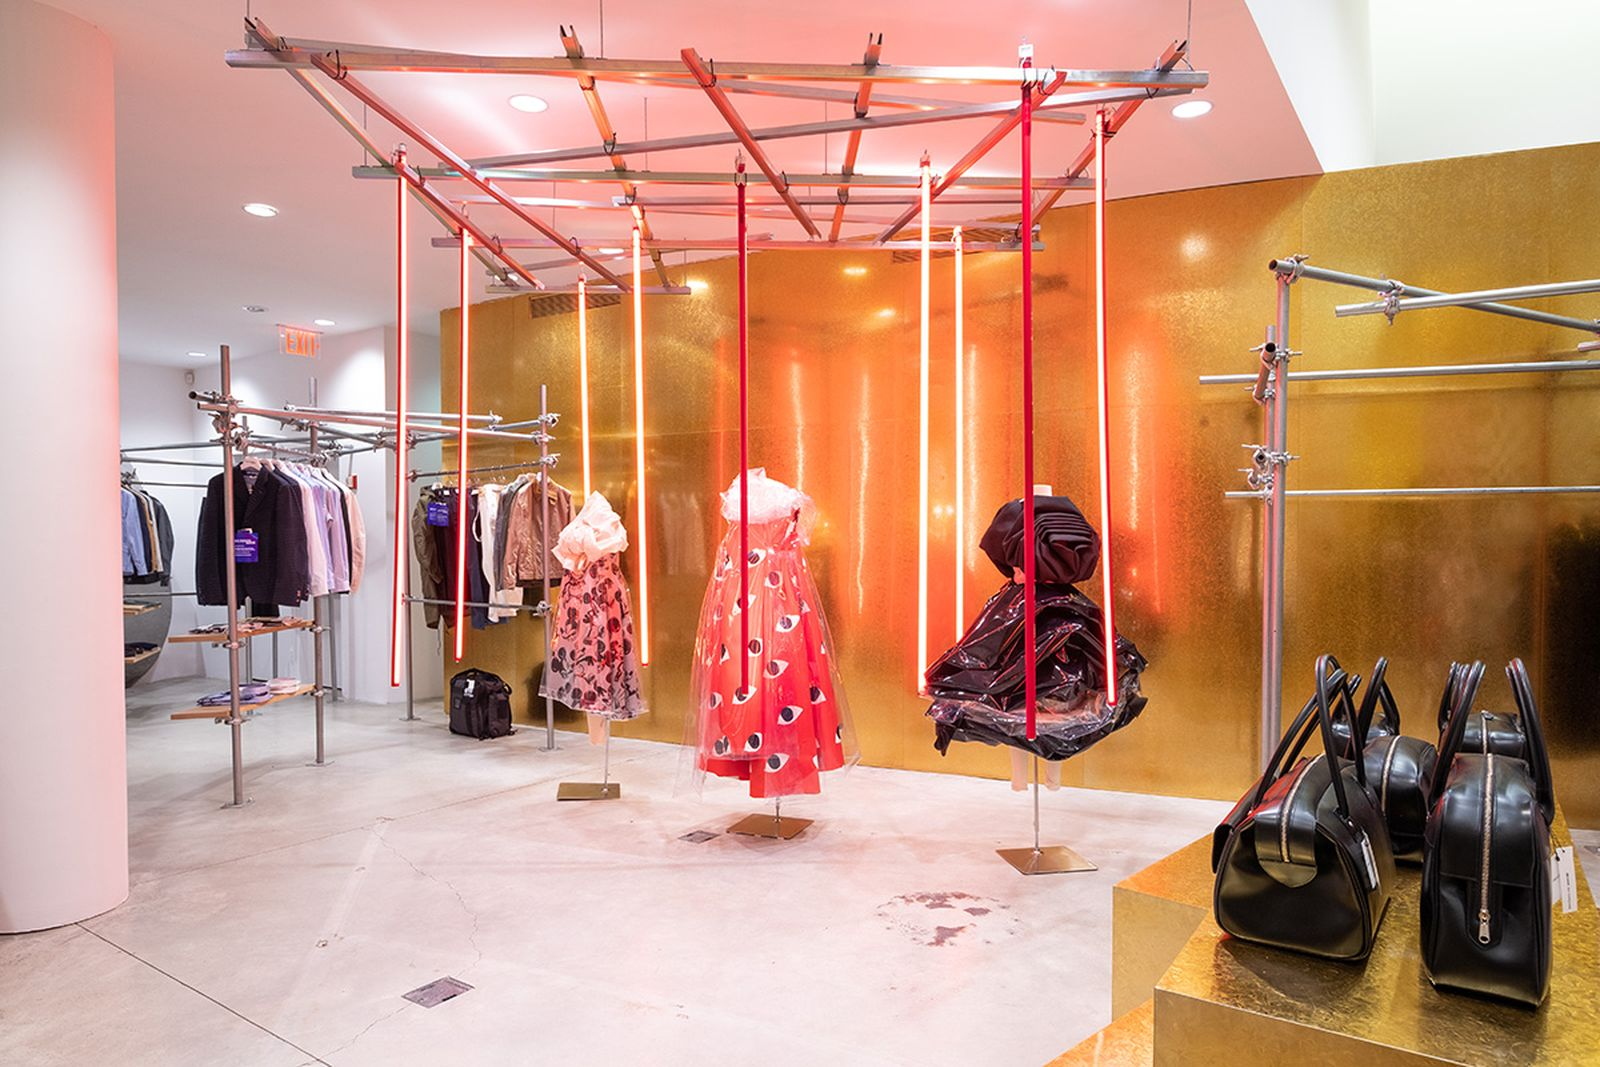 game-changers-best-store-interiors-changed-fashion-cdg-new-02